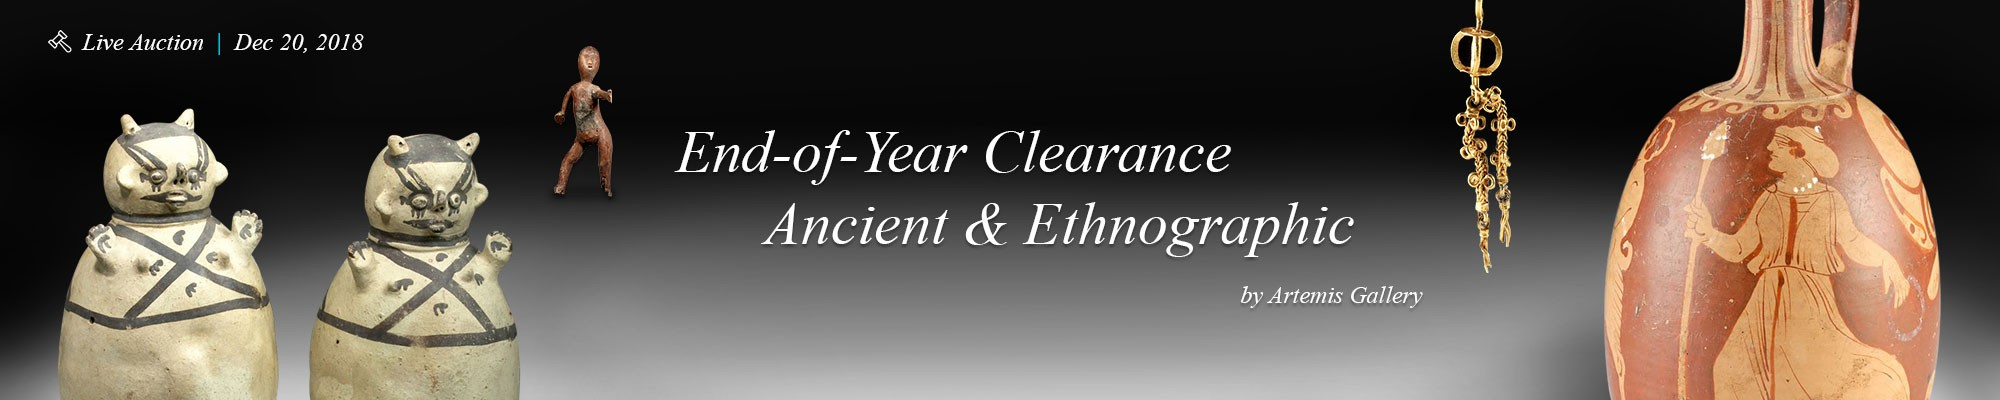 /end-of-year-clearance-ancient-ethnographic-artemis-gallery